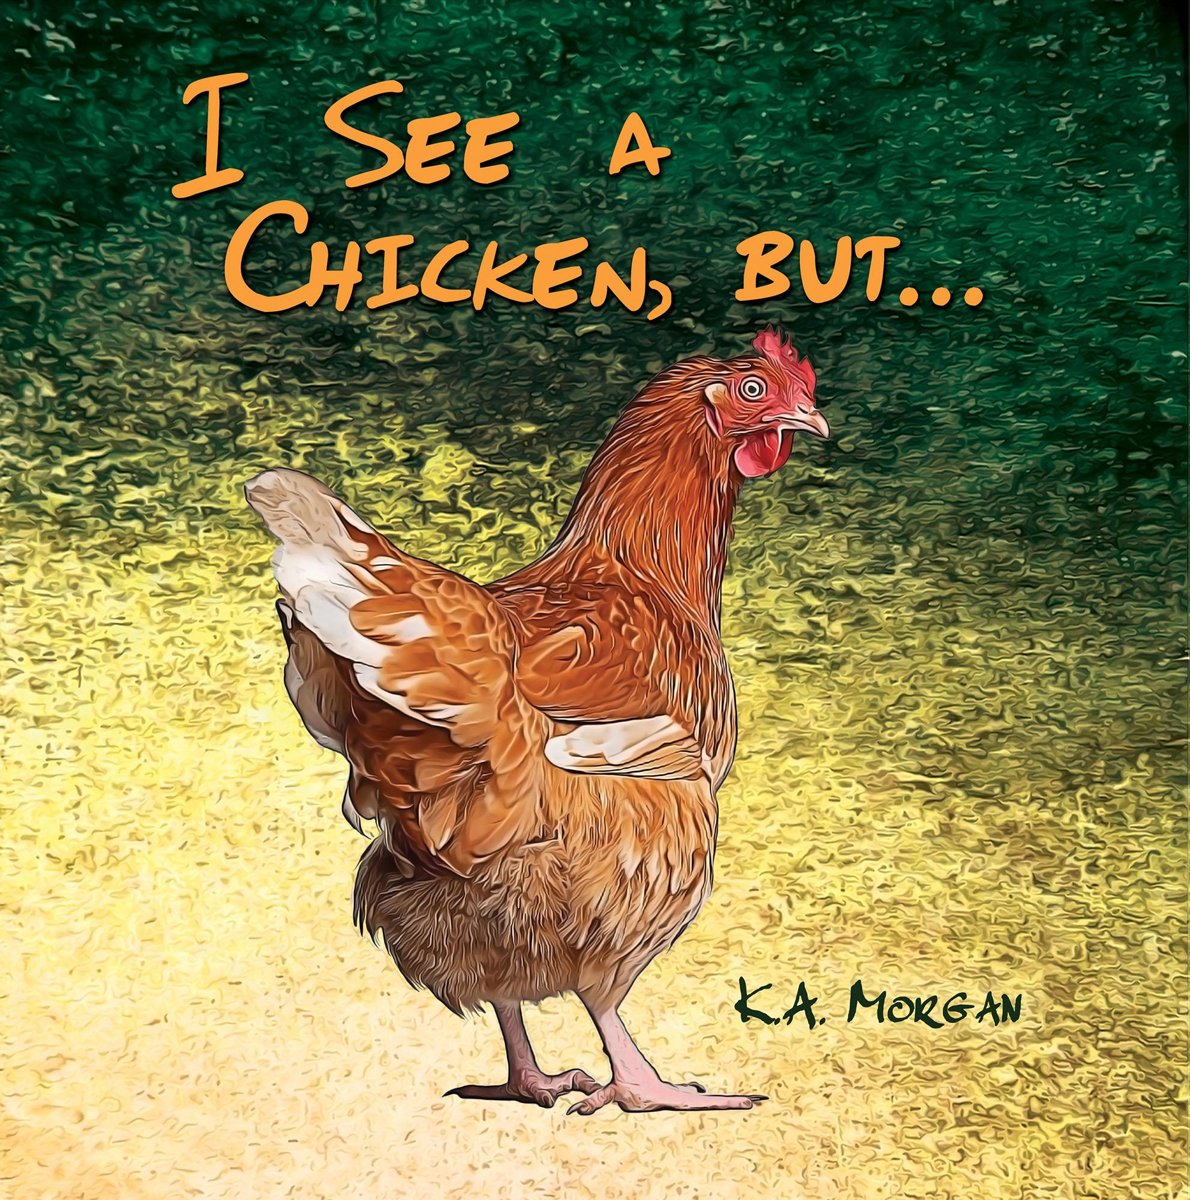 I See a Chicken, but...